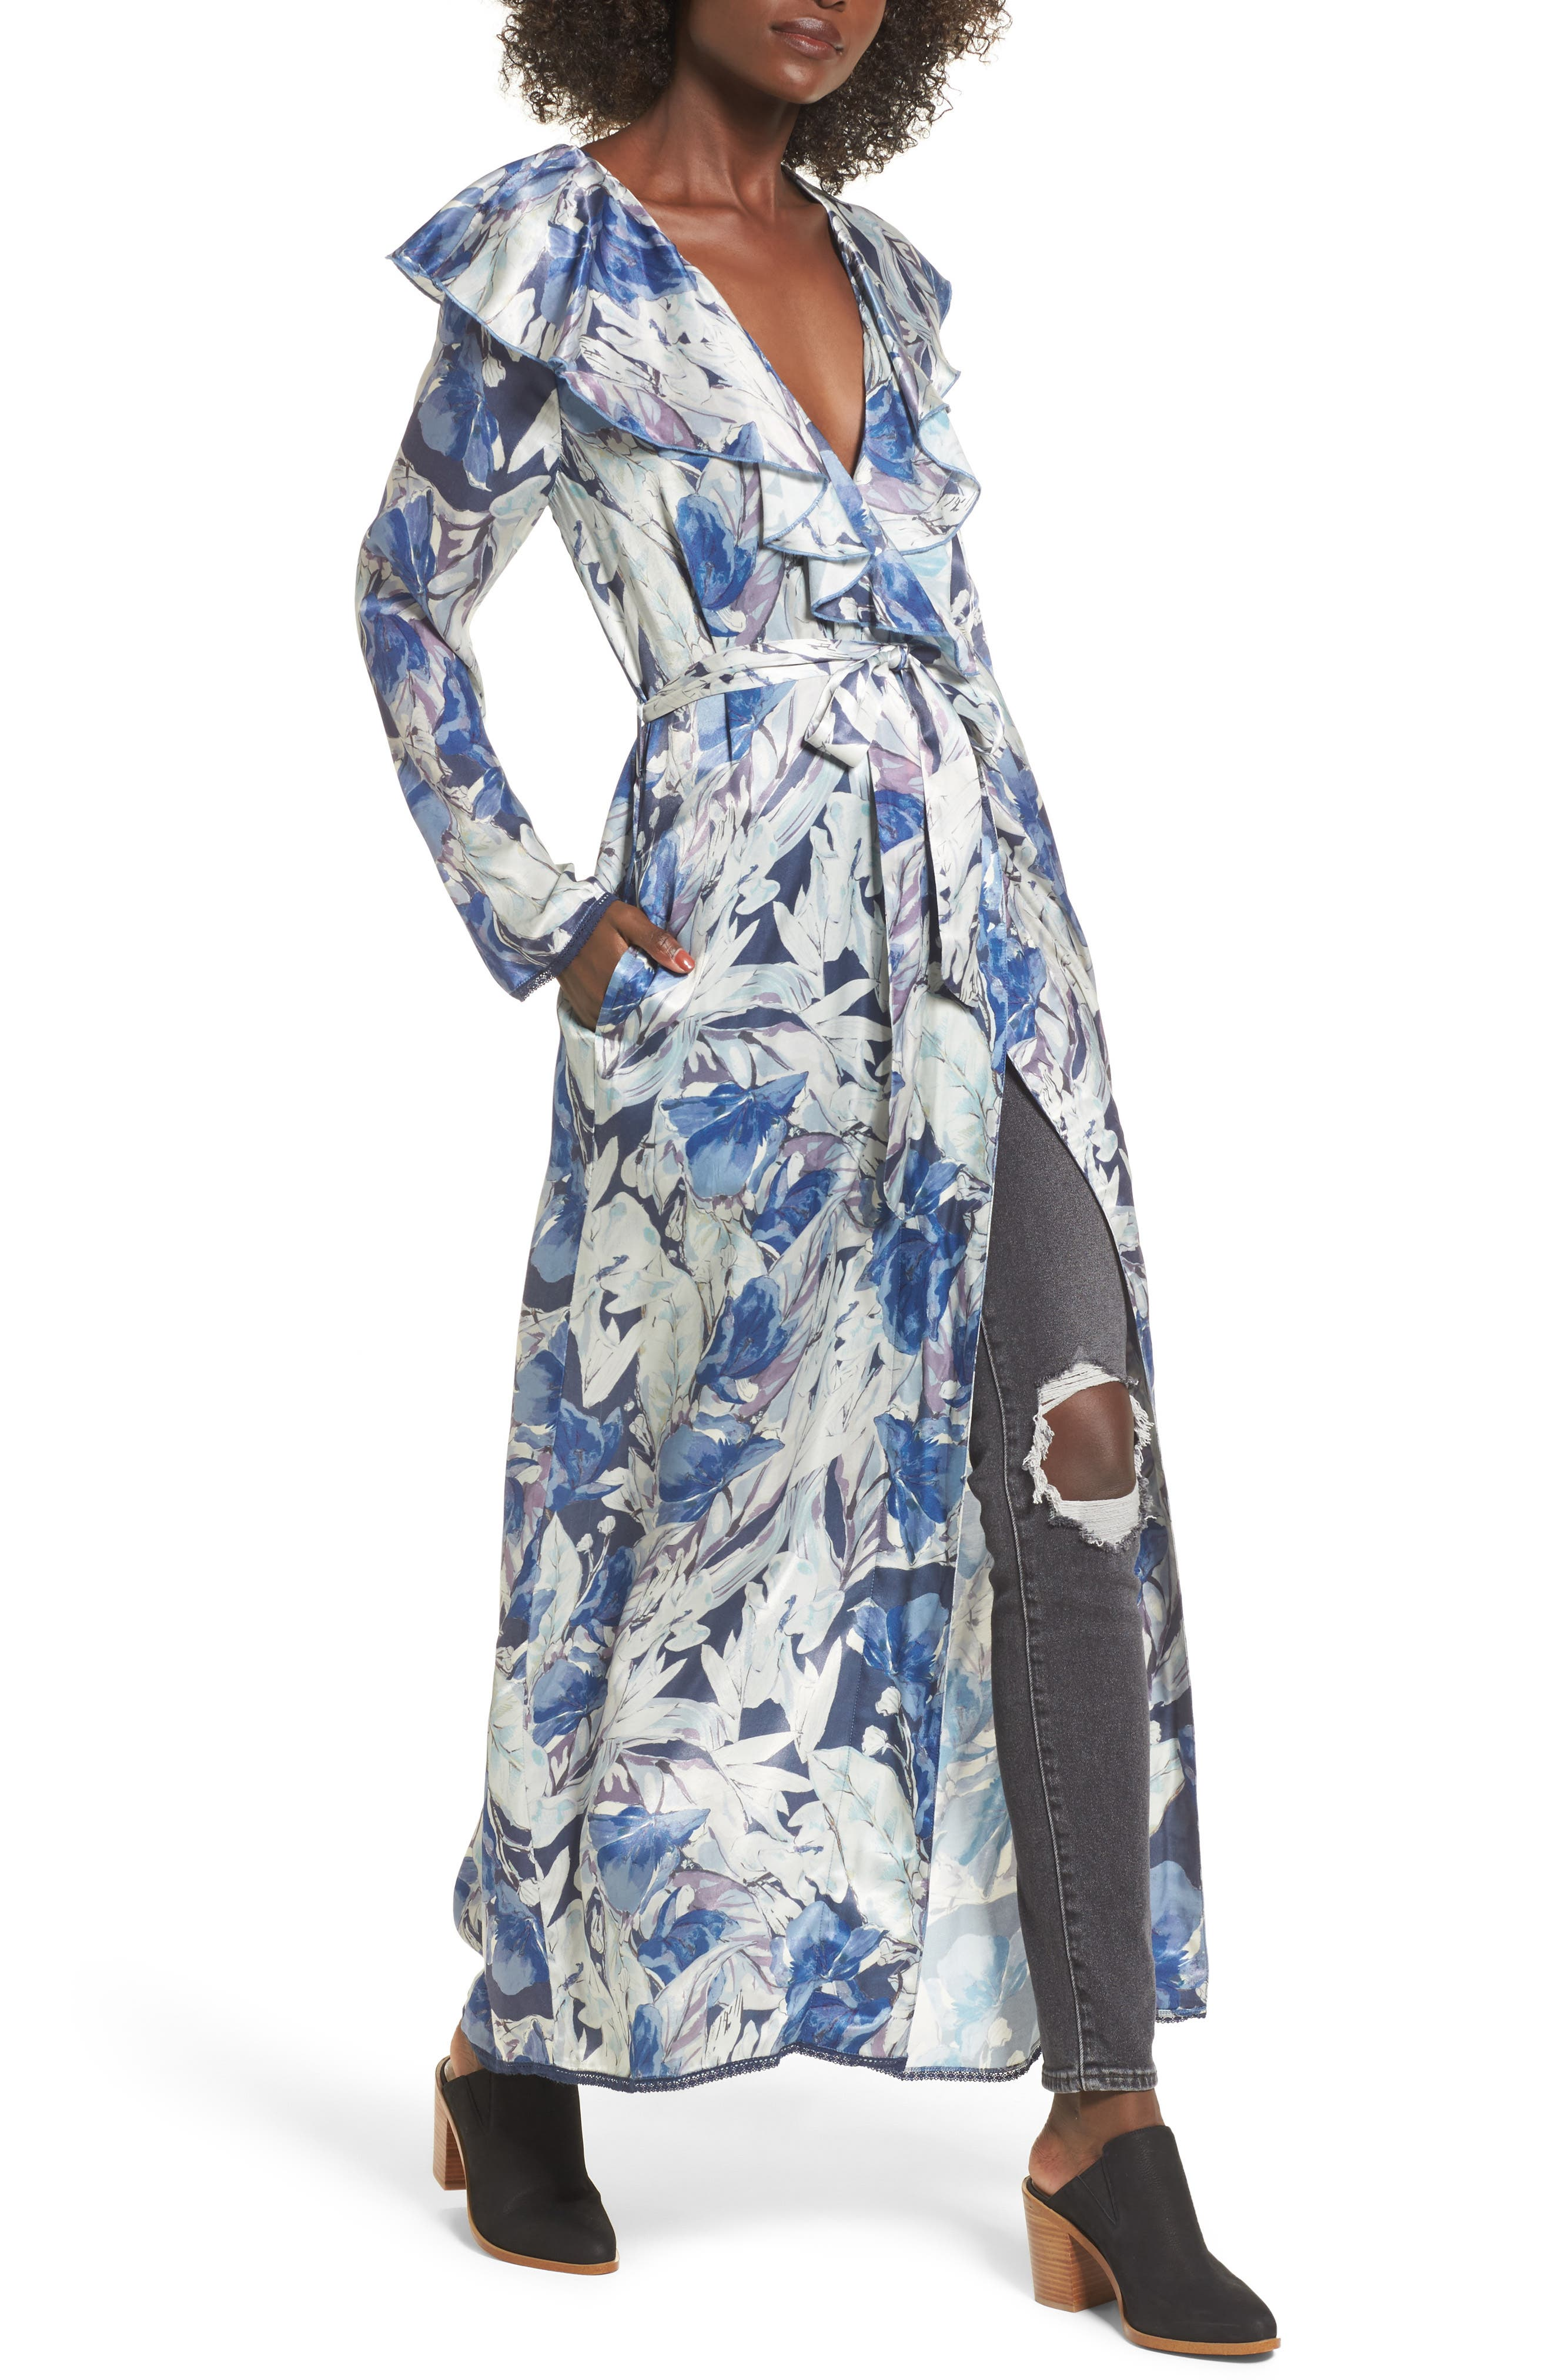 Alternate Image 1 Selected - Tularosa Drucilla Floral Print Duster